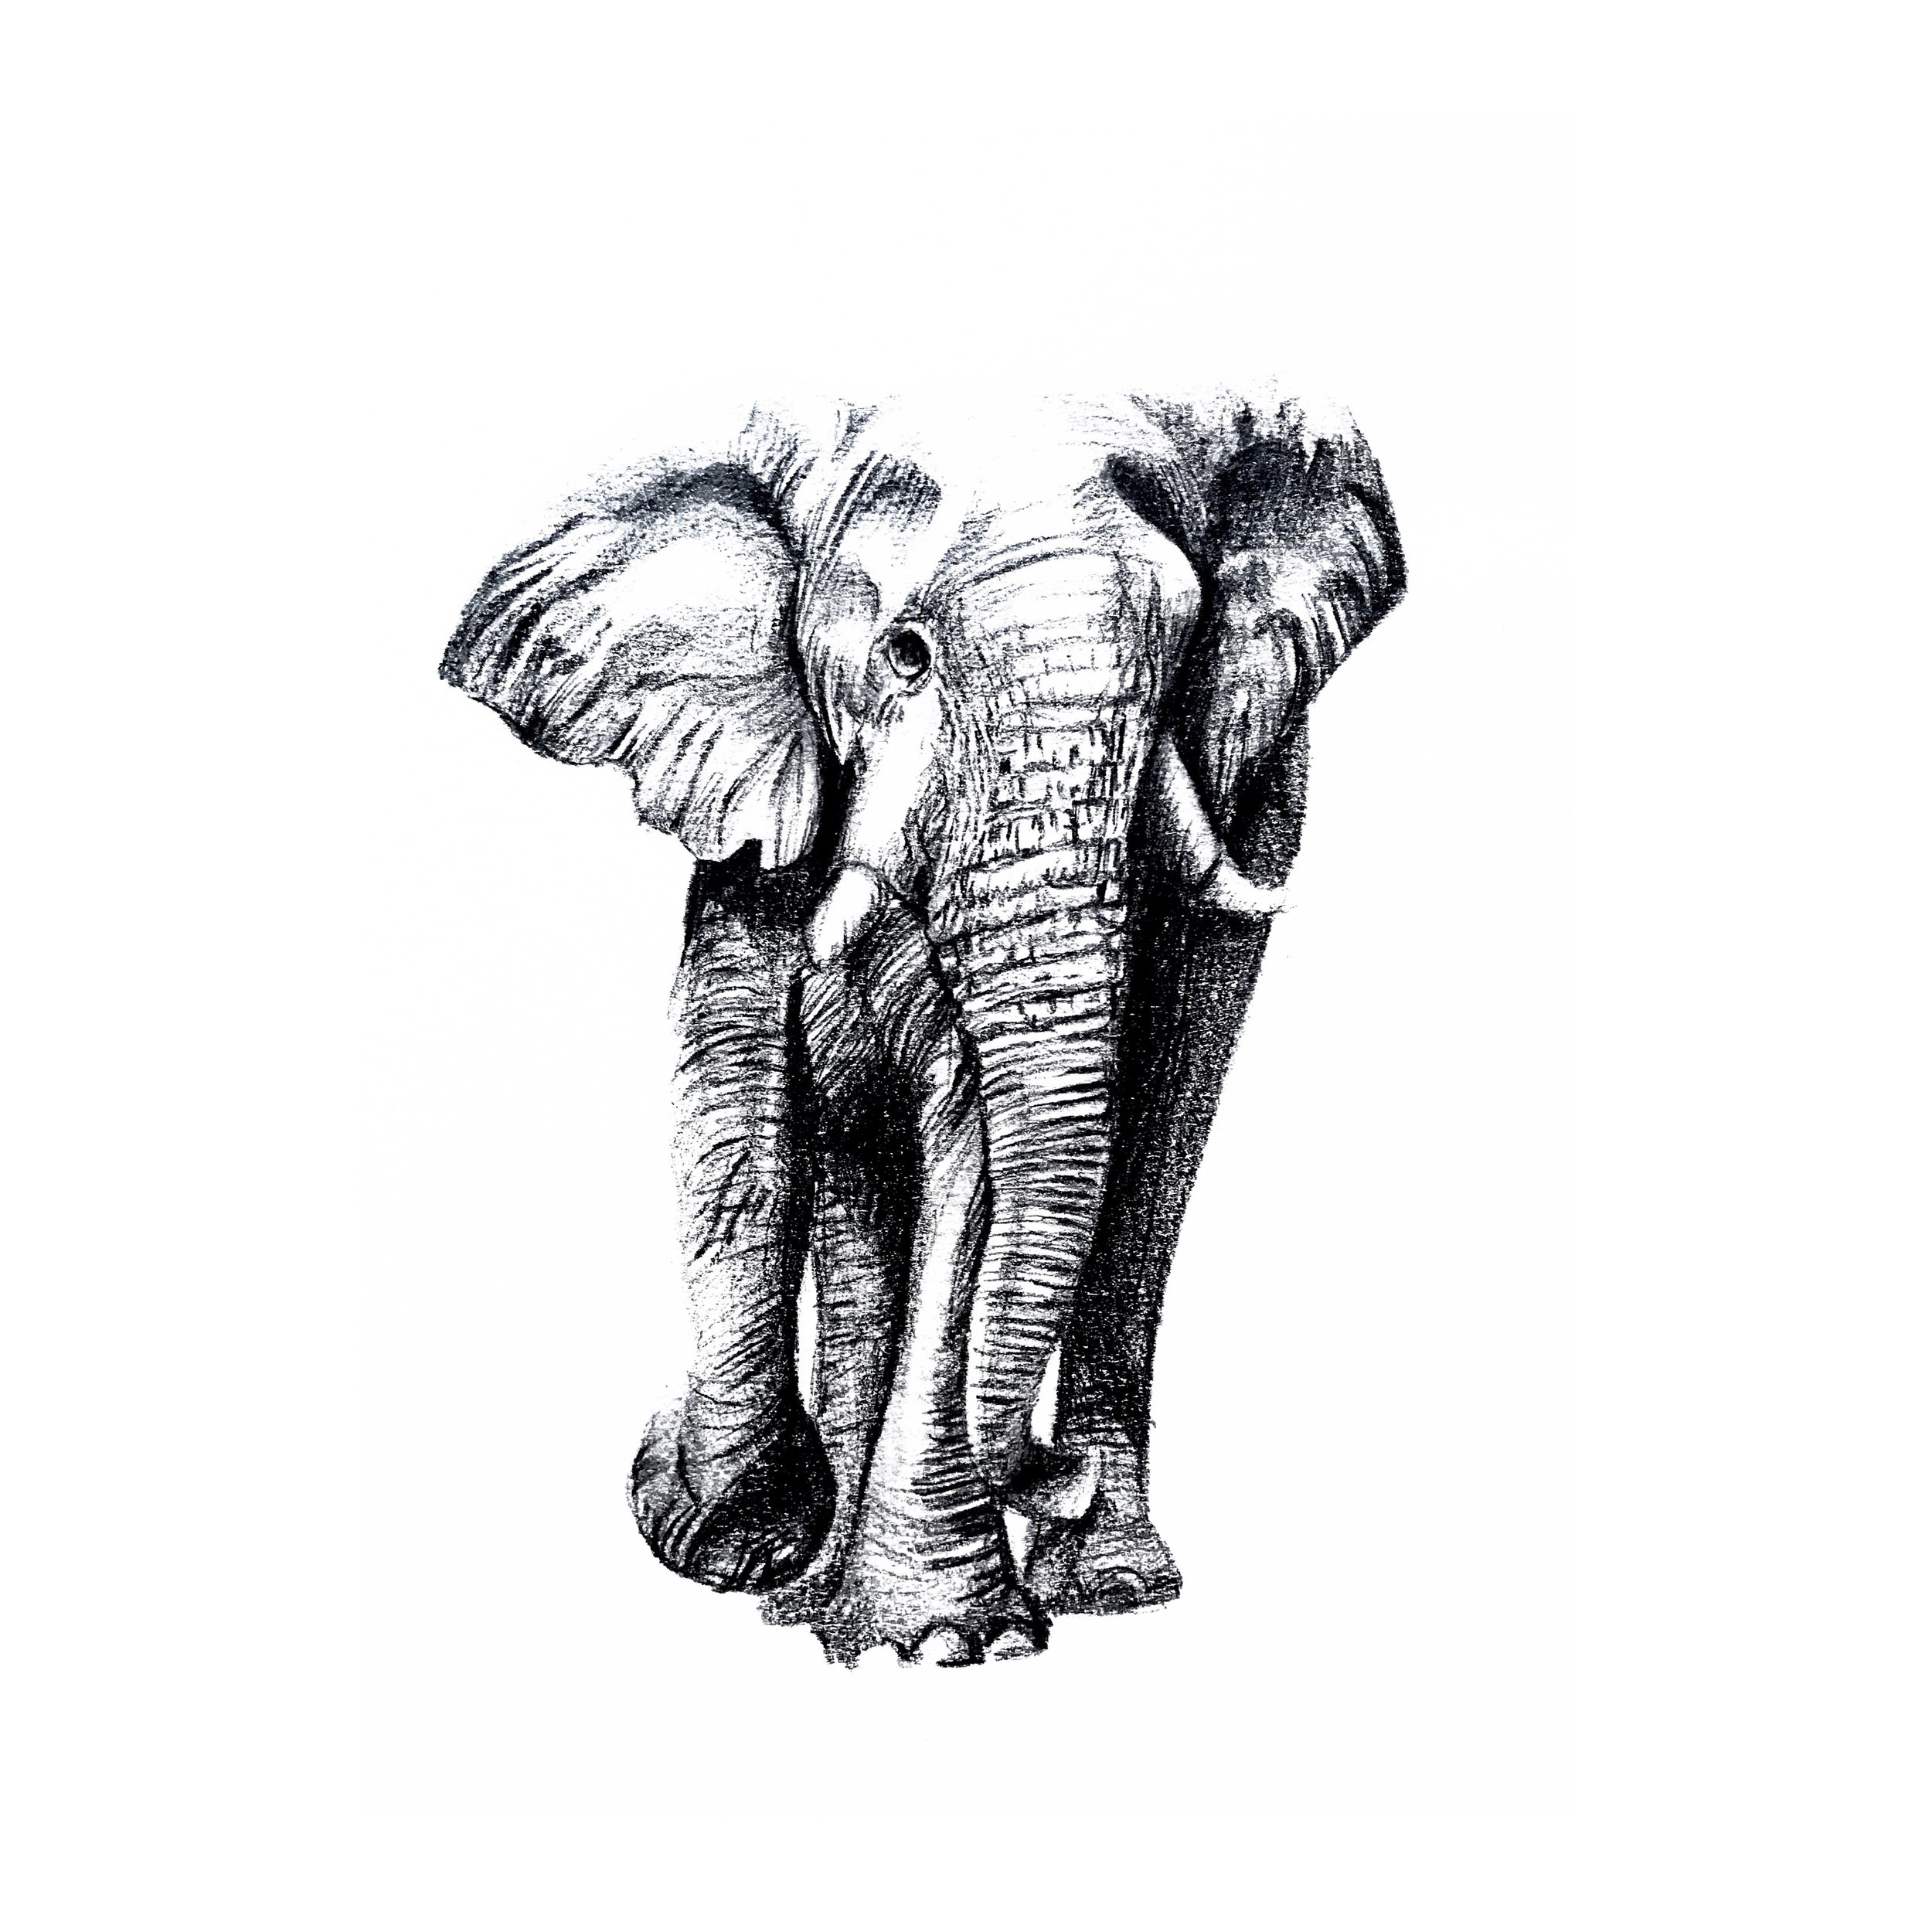 Elephant conservation fundraiser // Graphite on paper // Sydney, Australia